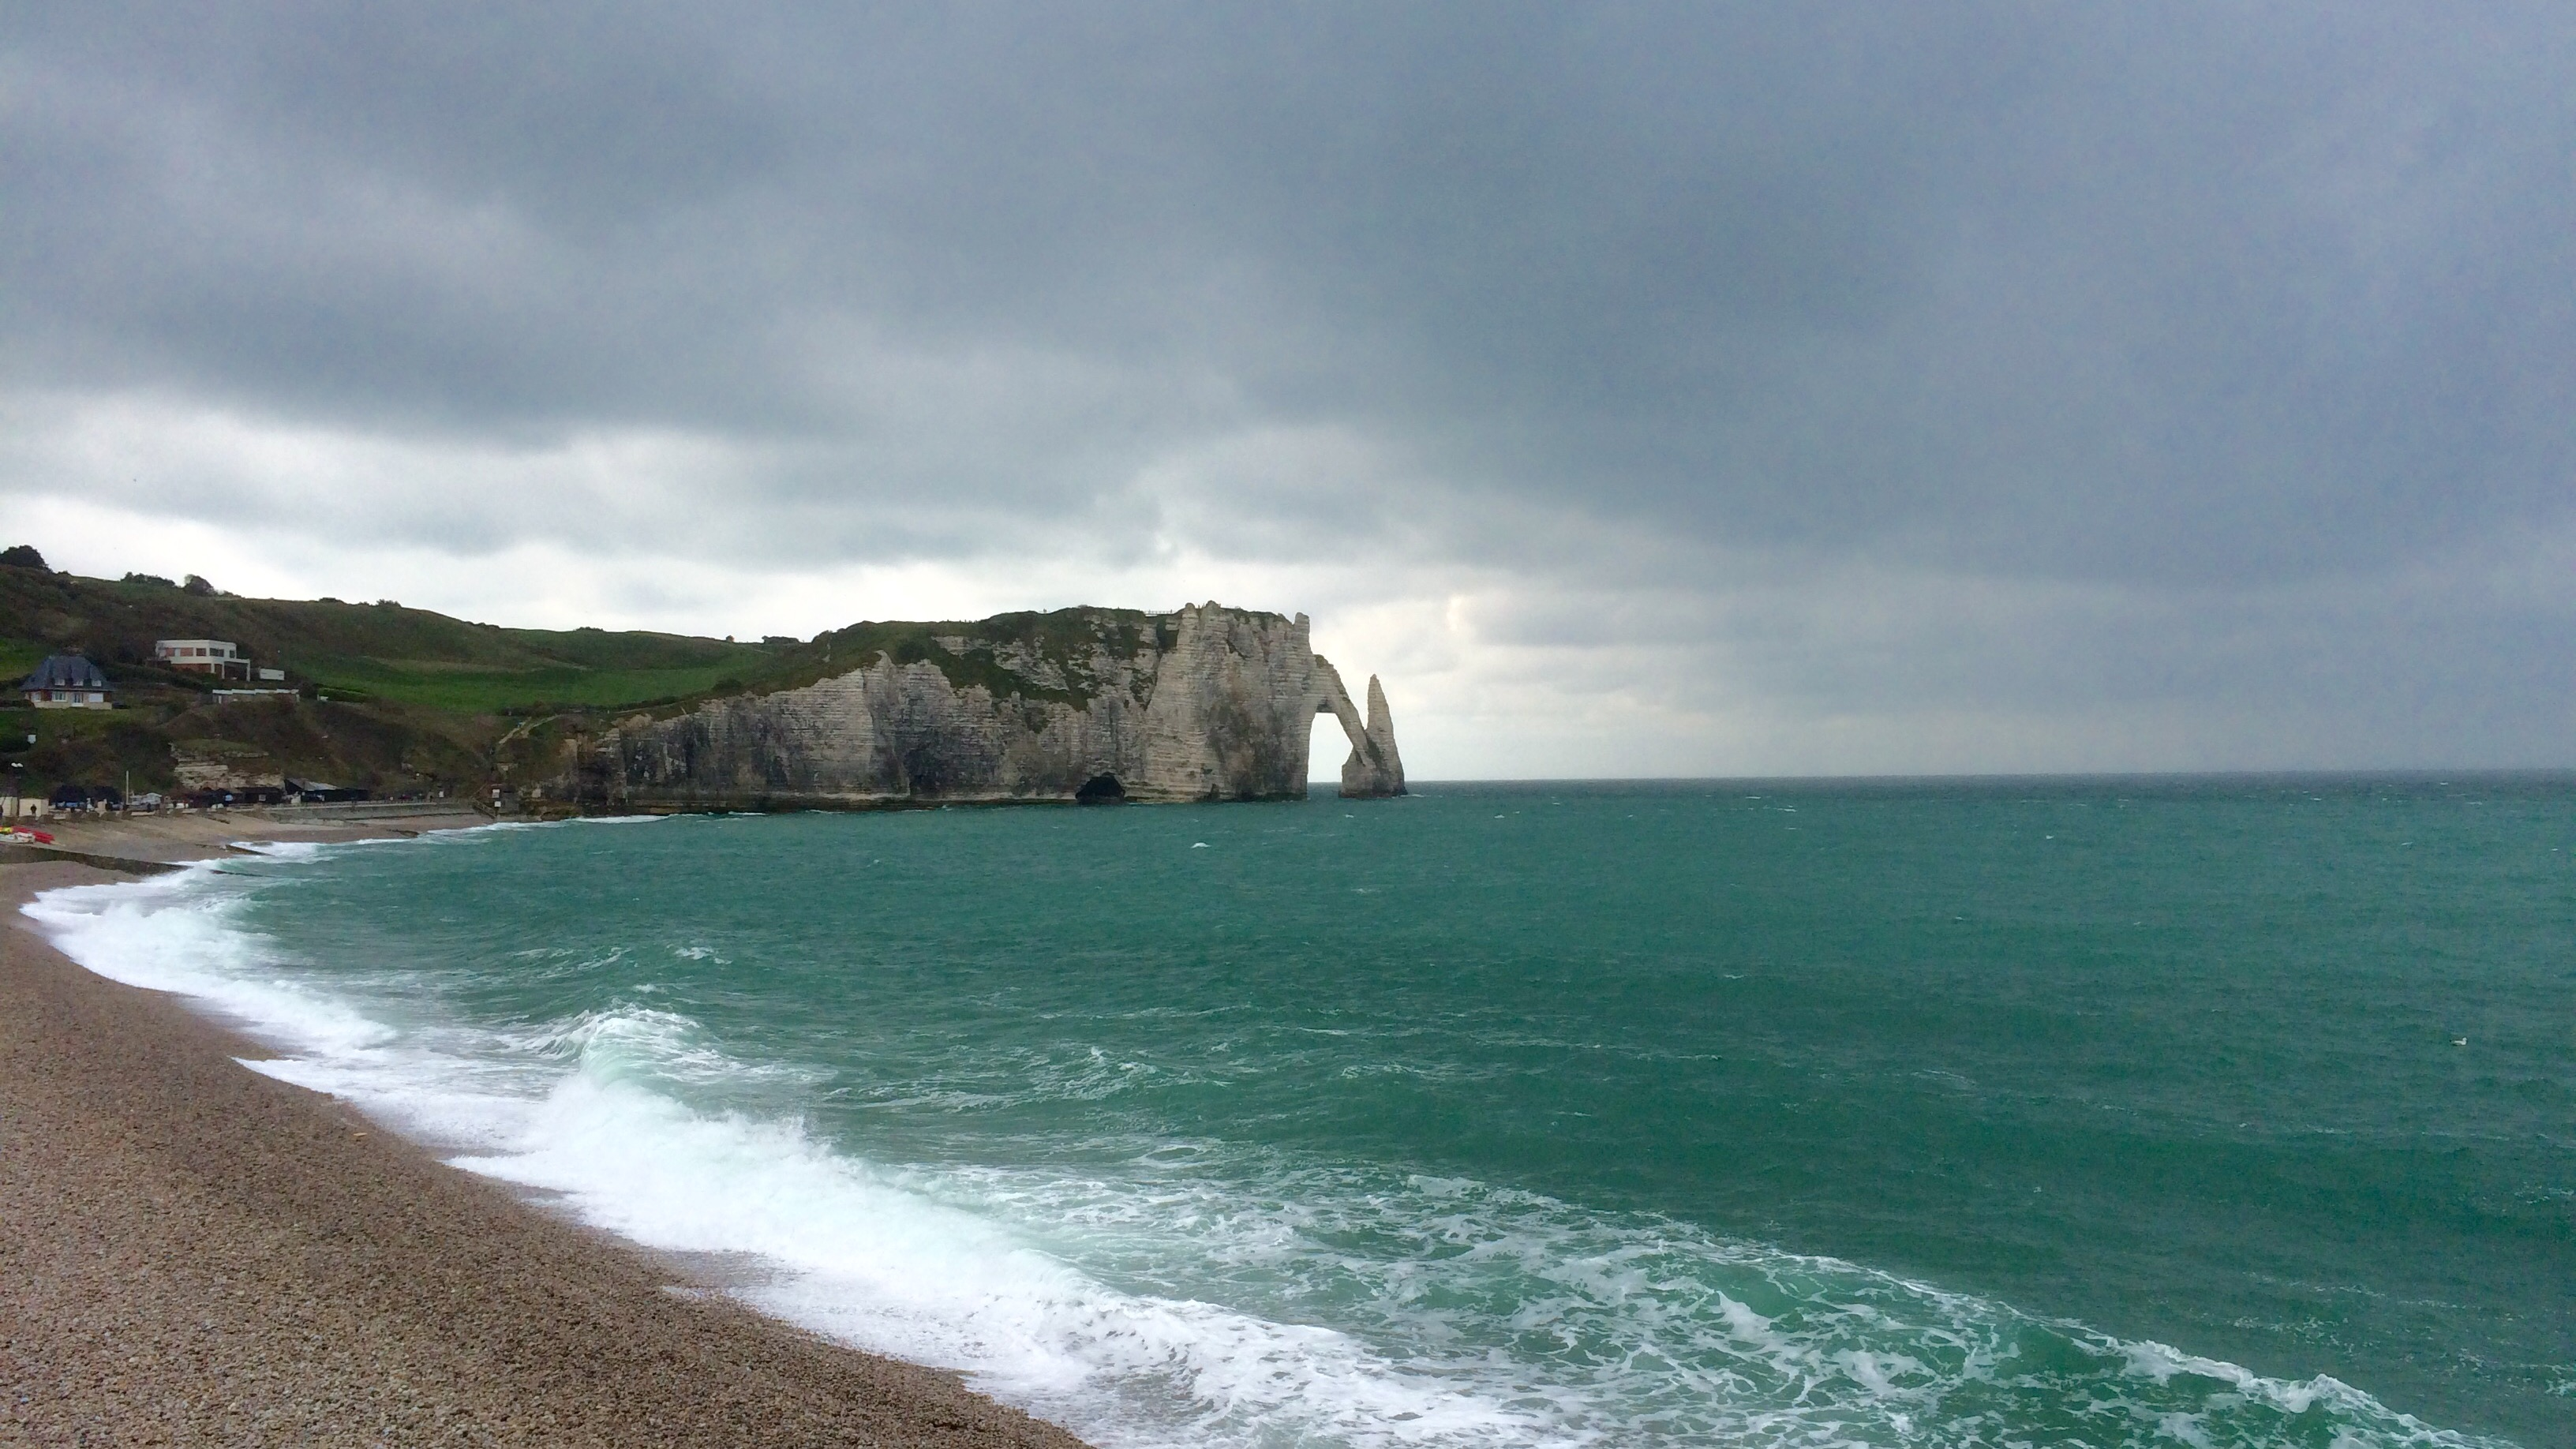 Etretat - Seine-Maritime, Beach, Coast, Landscape, Outdoor, HQ Photo